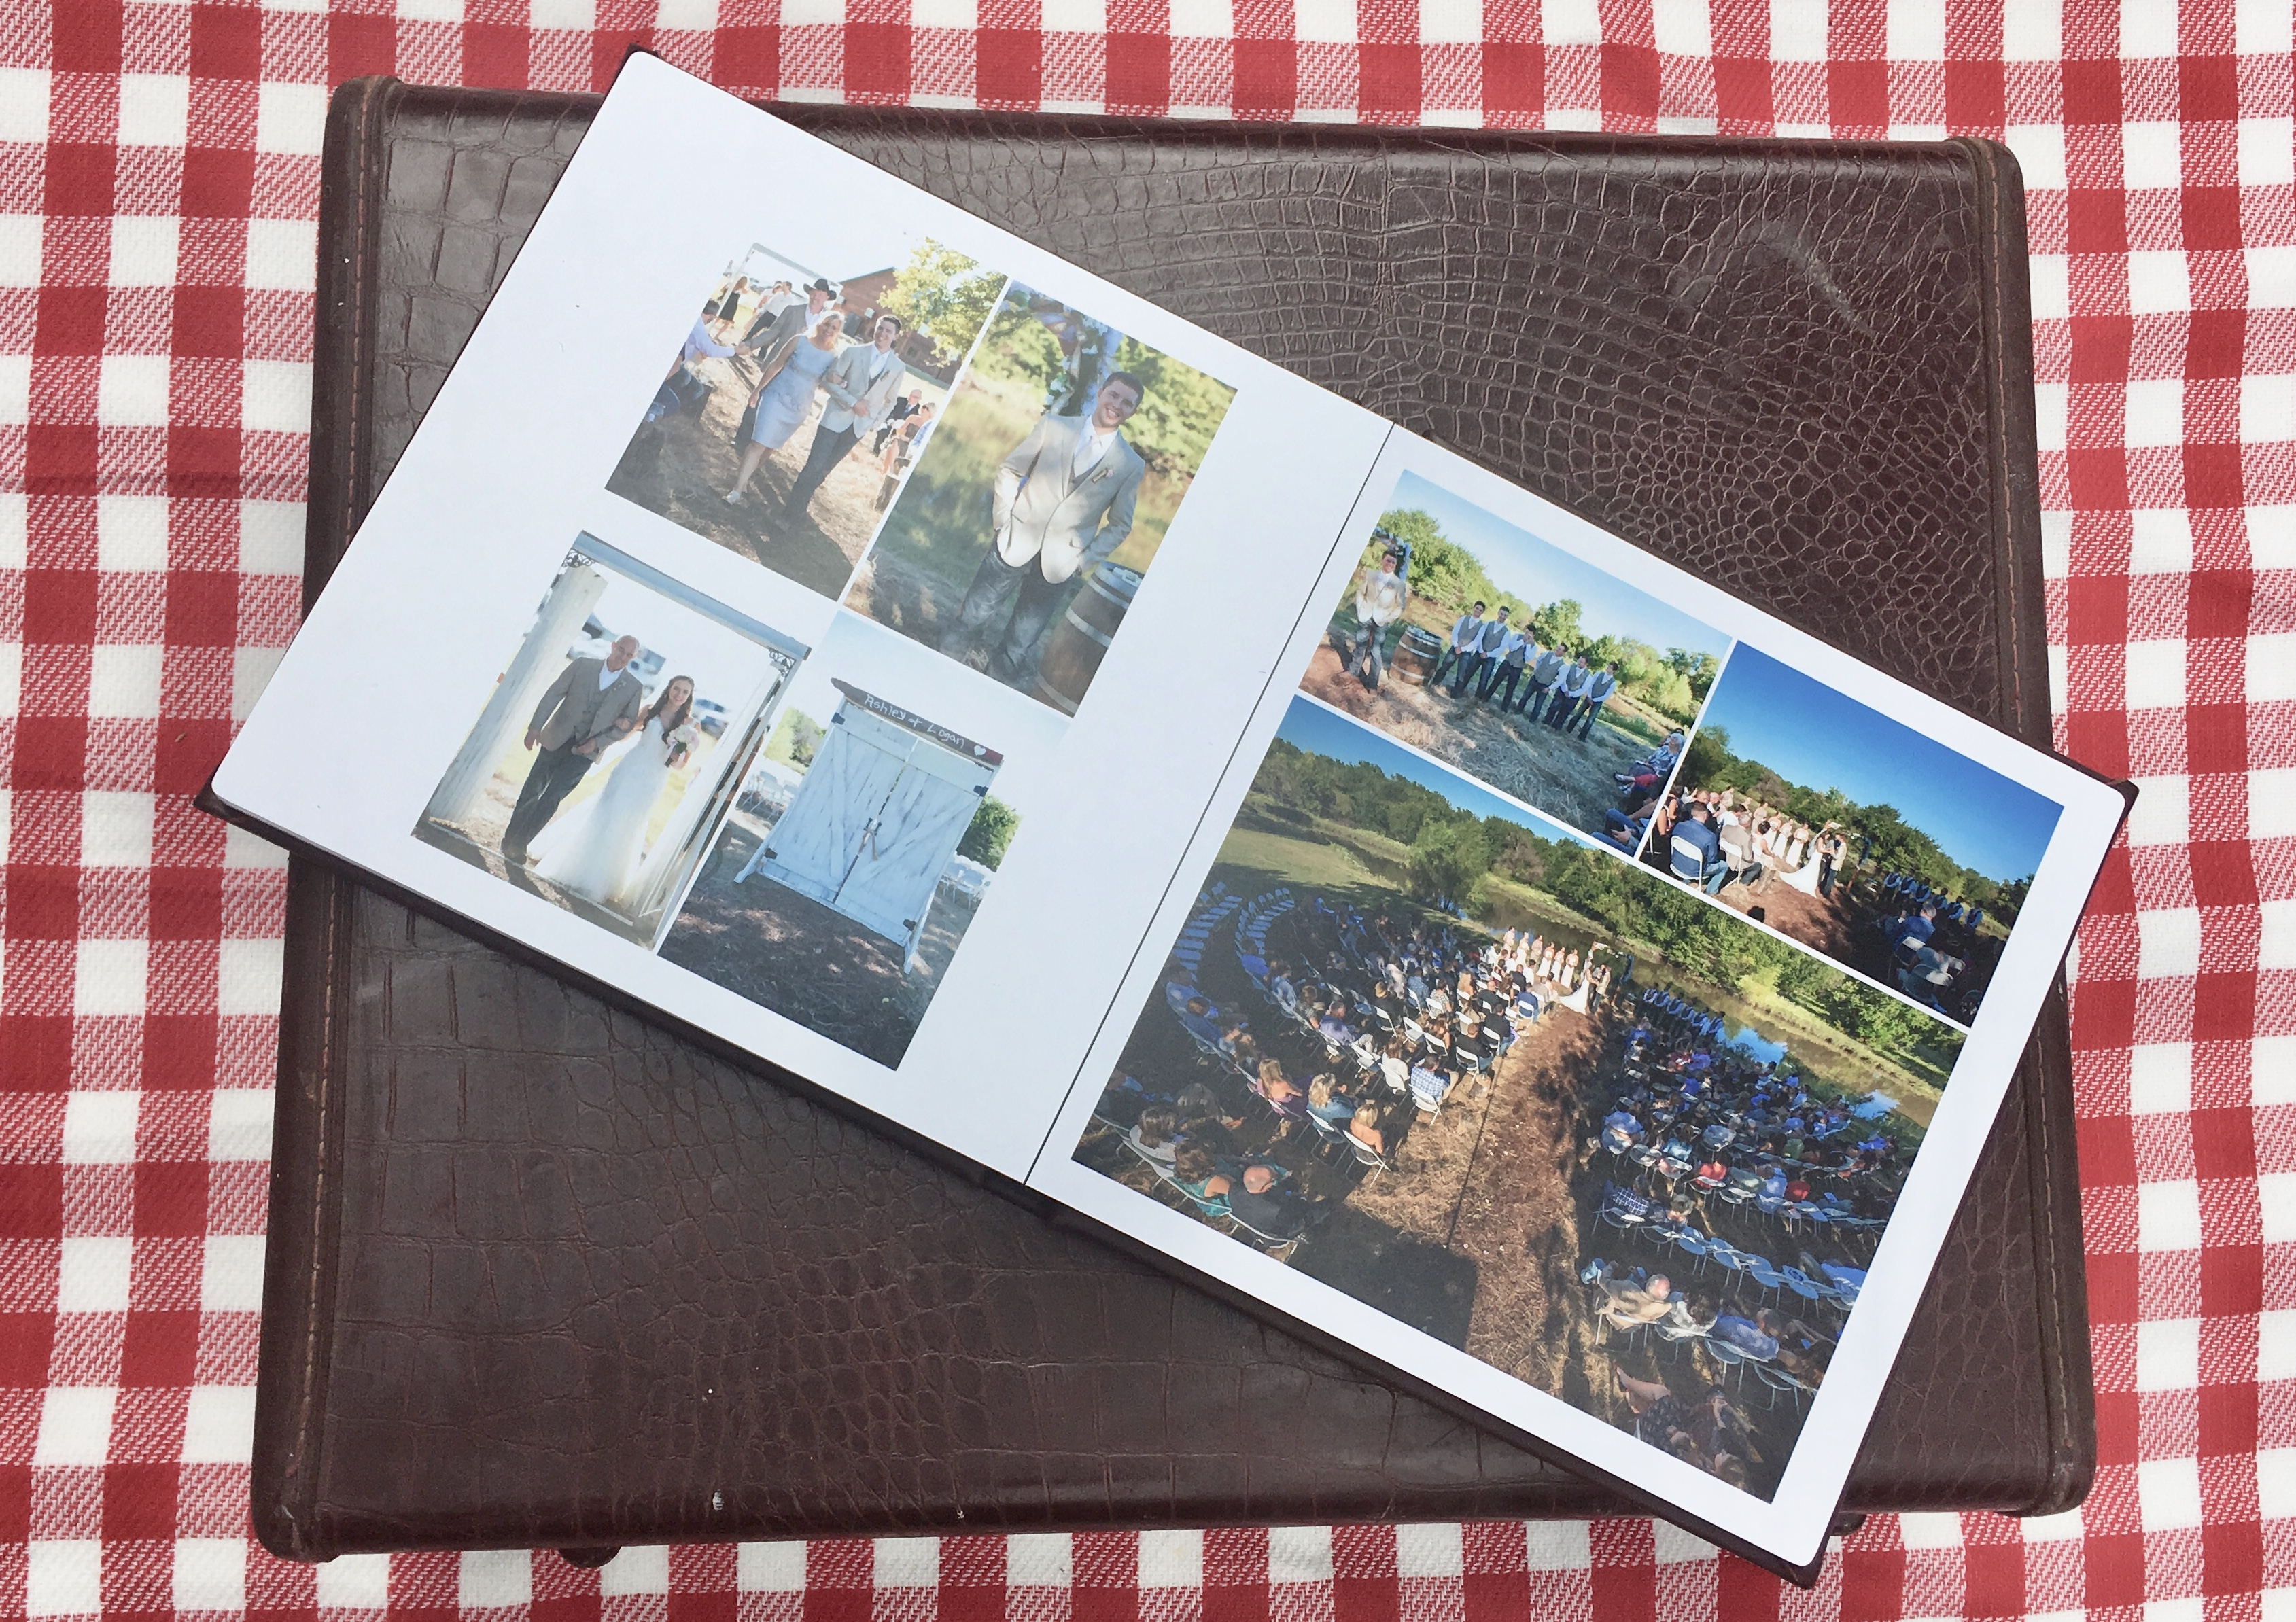 wedding photos, old suit case, picnic anniversary